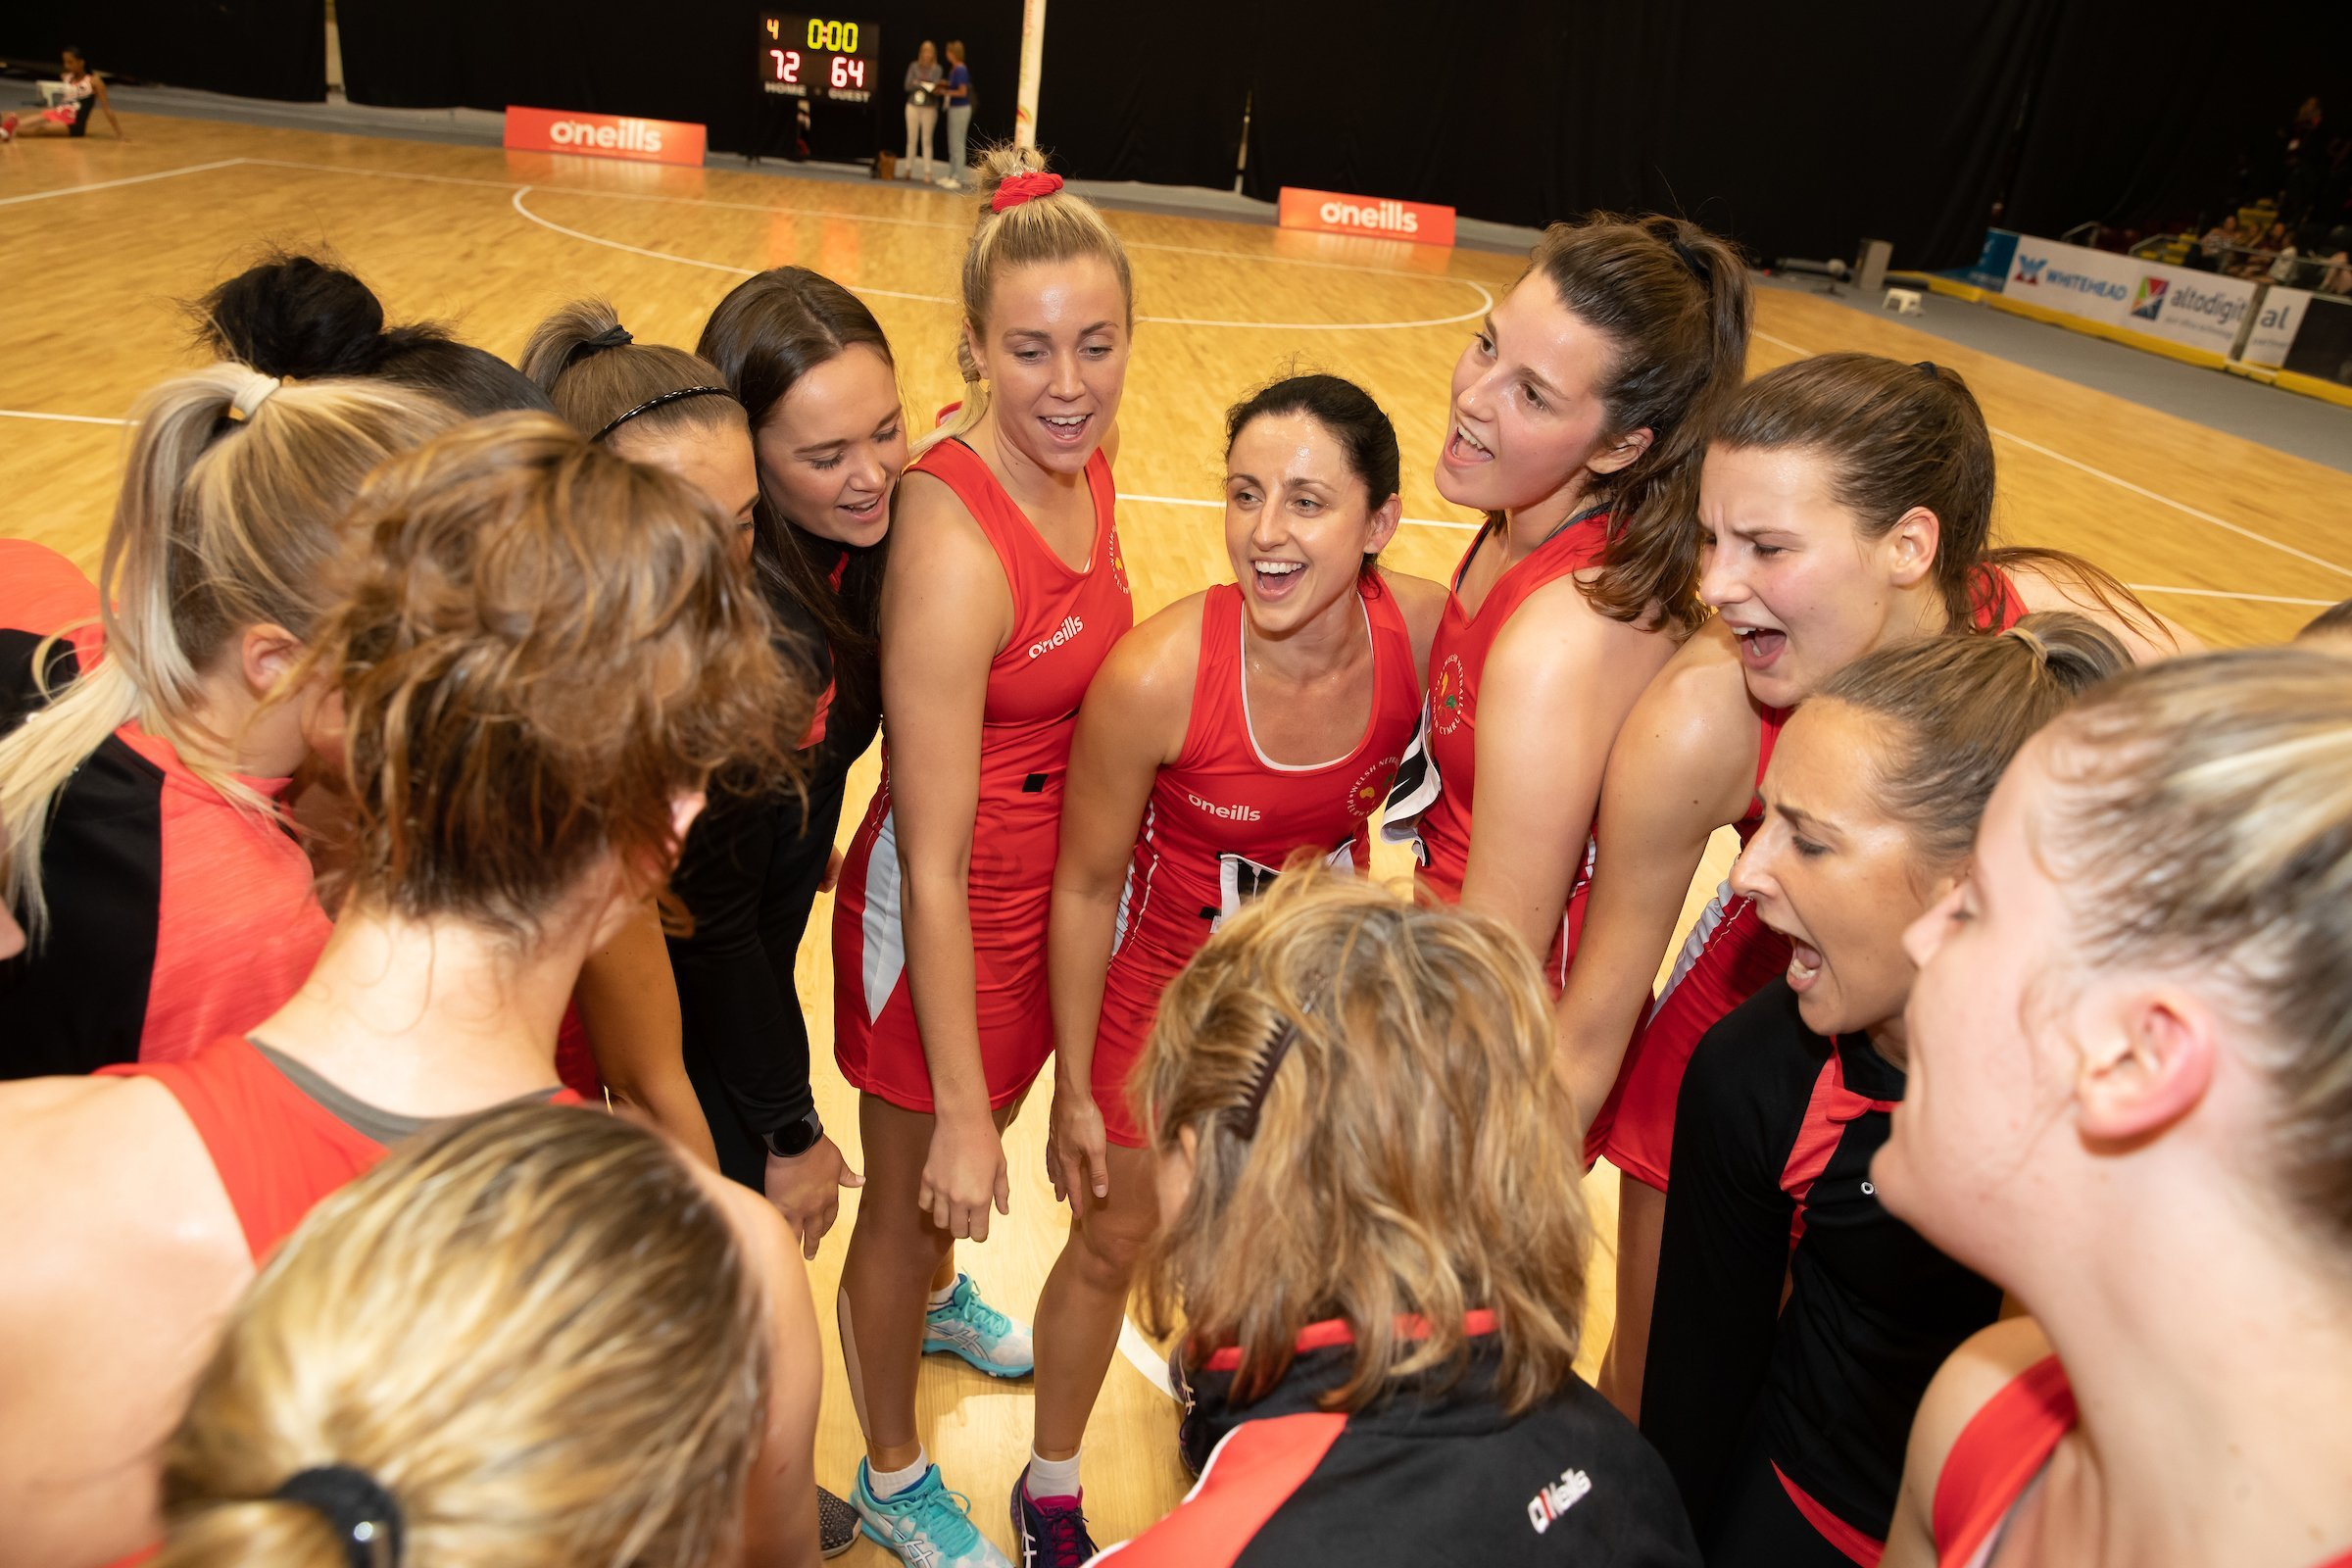 Welsh Netball announce Wales senior squad as they look ahead the the 2022 Commonwealth Games and 2023 World Cup